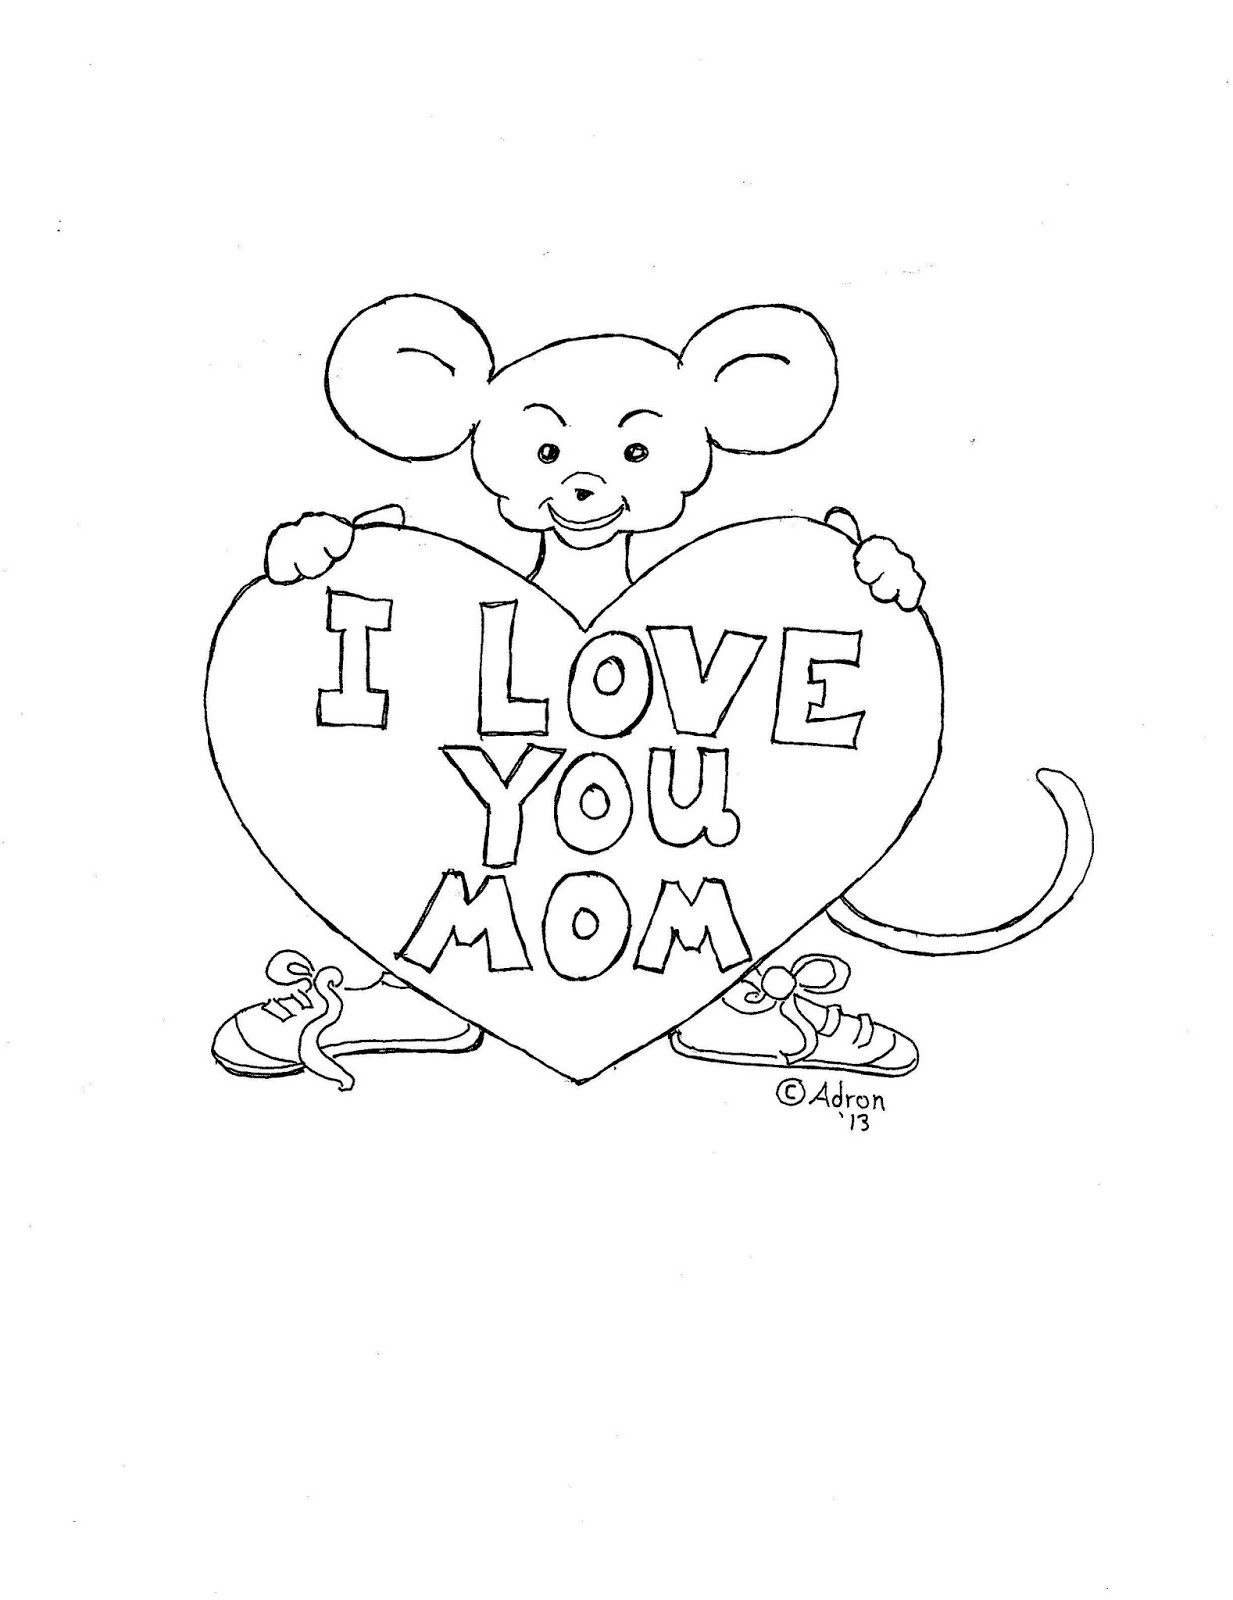 Coloring Pages for Kids by Mr. Adron: Mother' Day Print ...